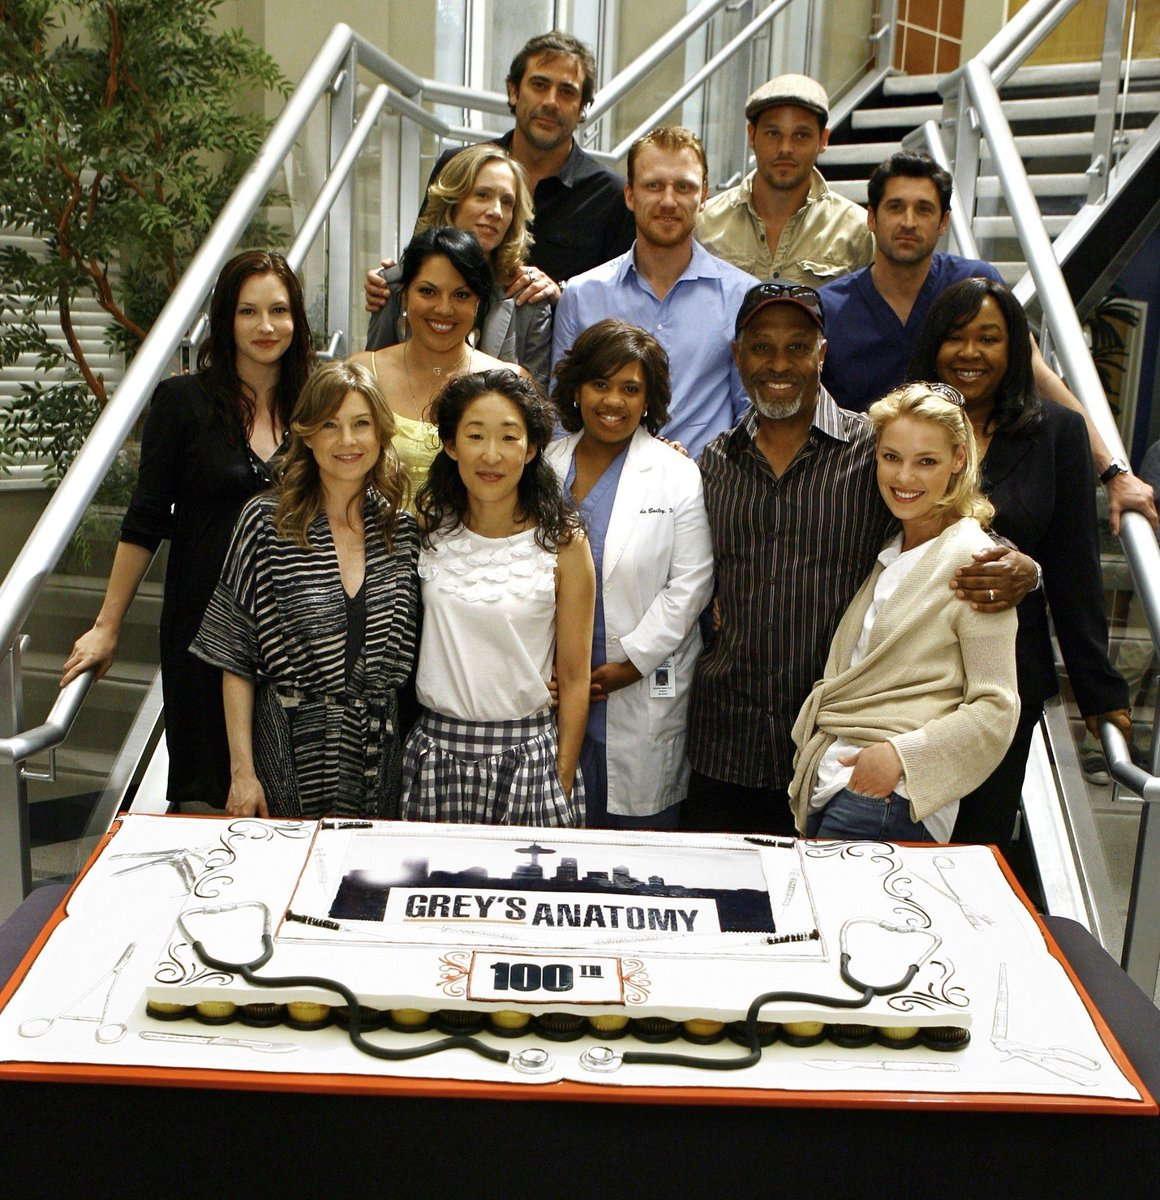 I miss this cast so much 😭 #GreysAnantomy